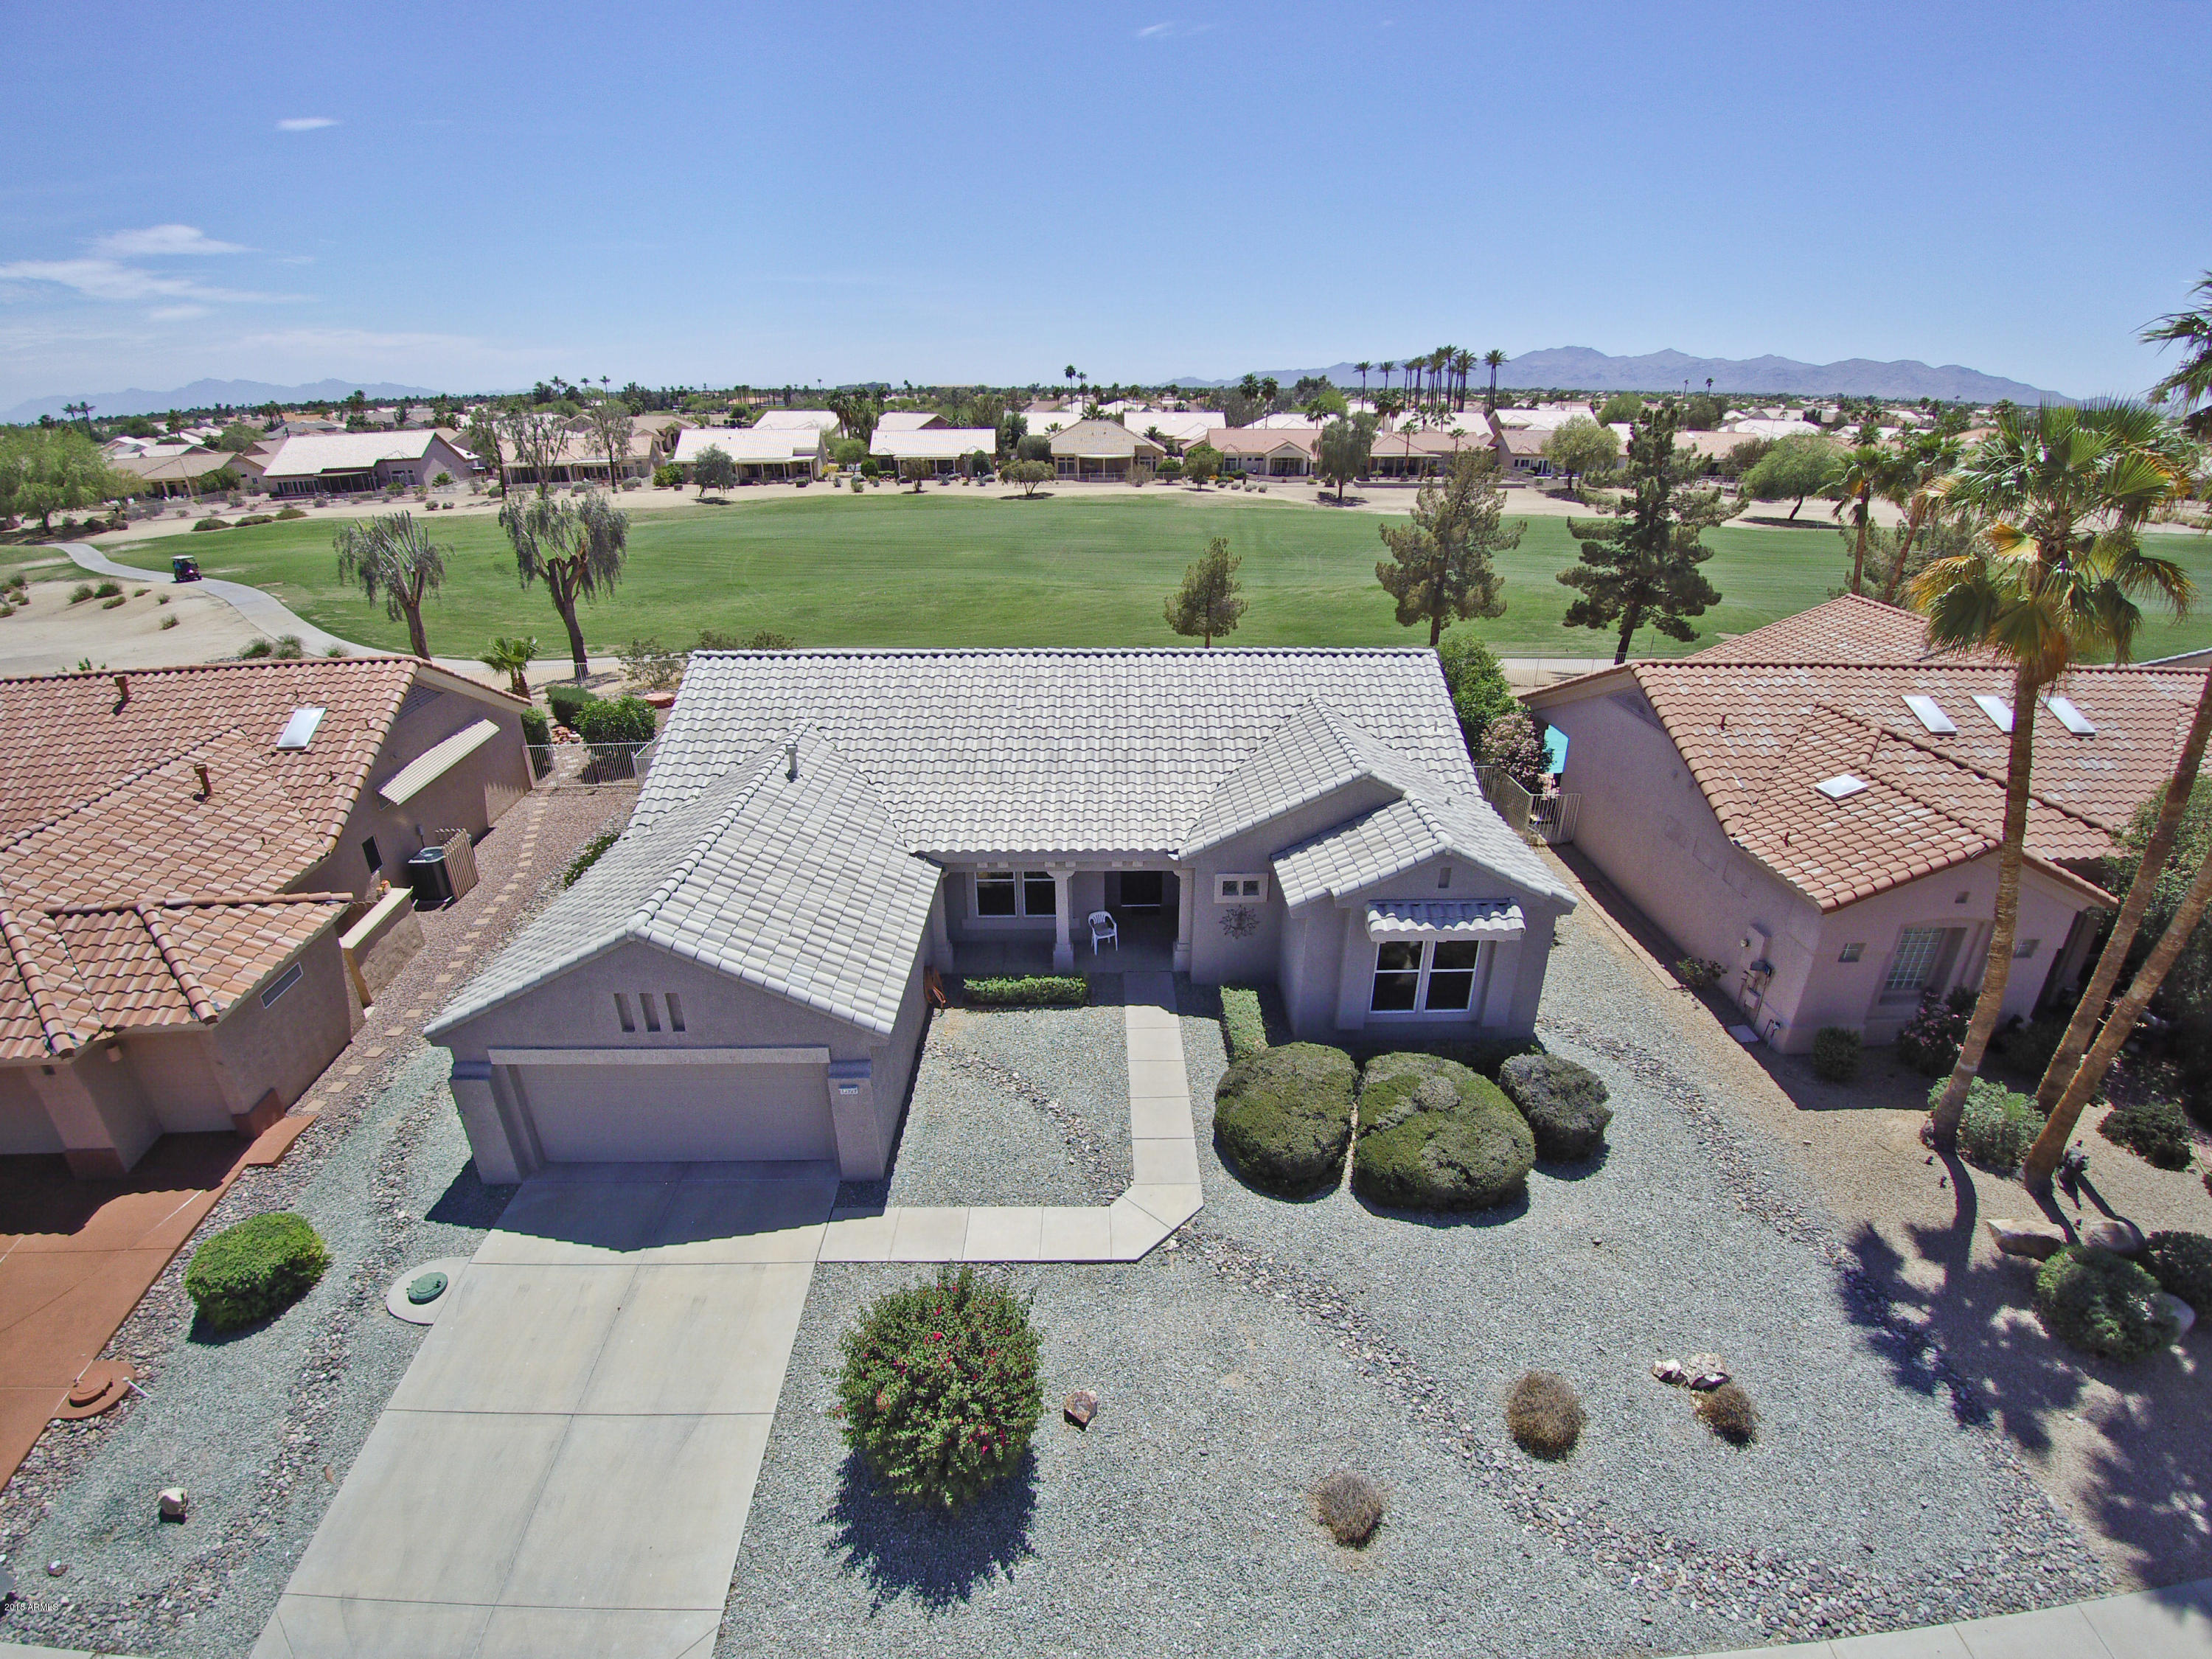 13909 W VIA TERCERO, SUN CITY WEST, AZ 85375